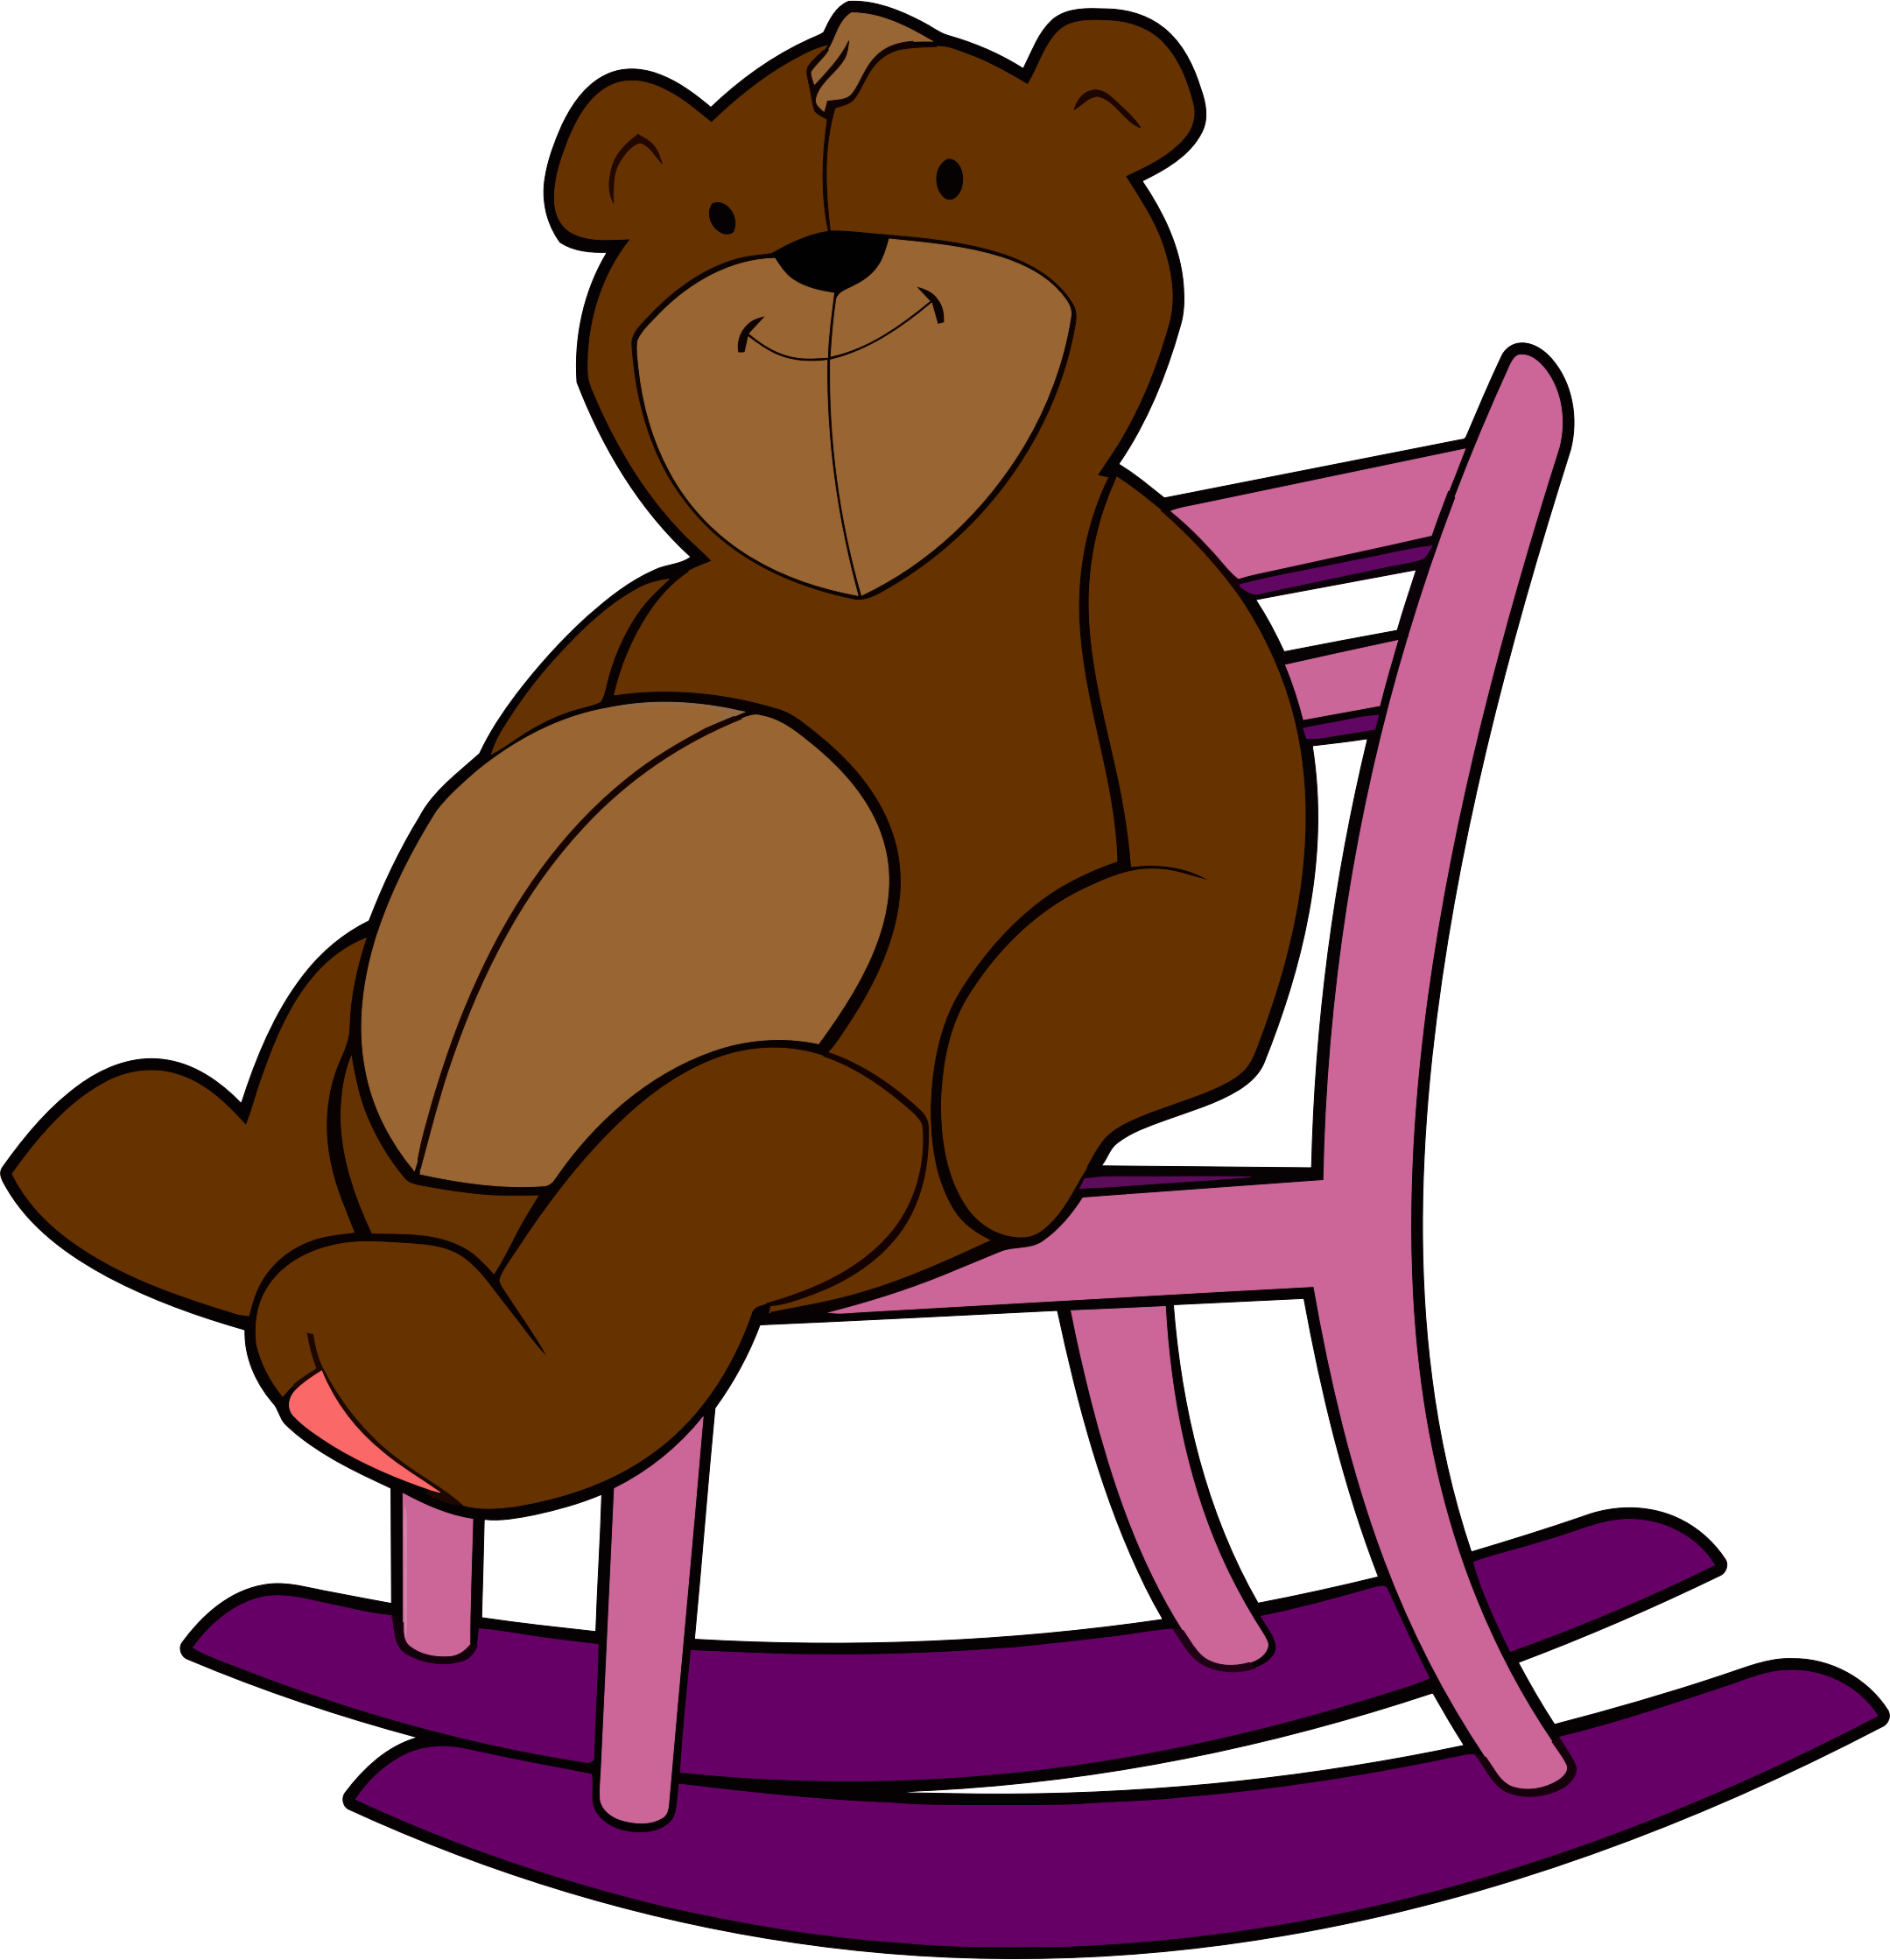 Papa pencil and in. Clipart chair baby bear